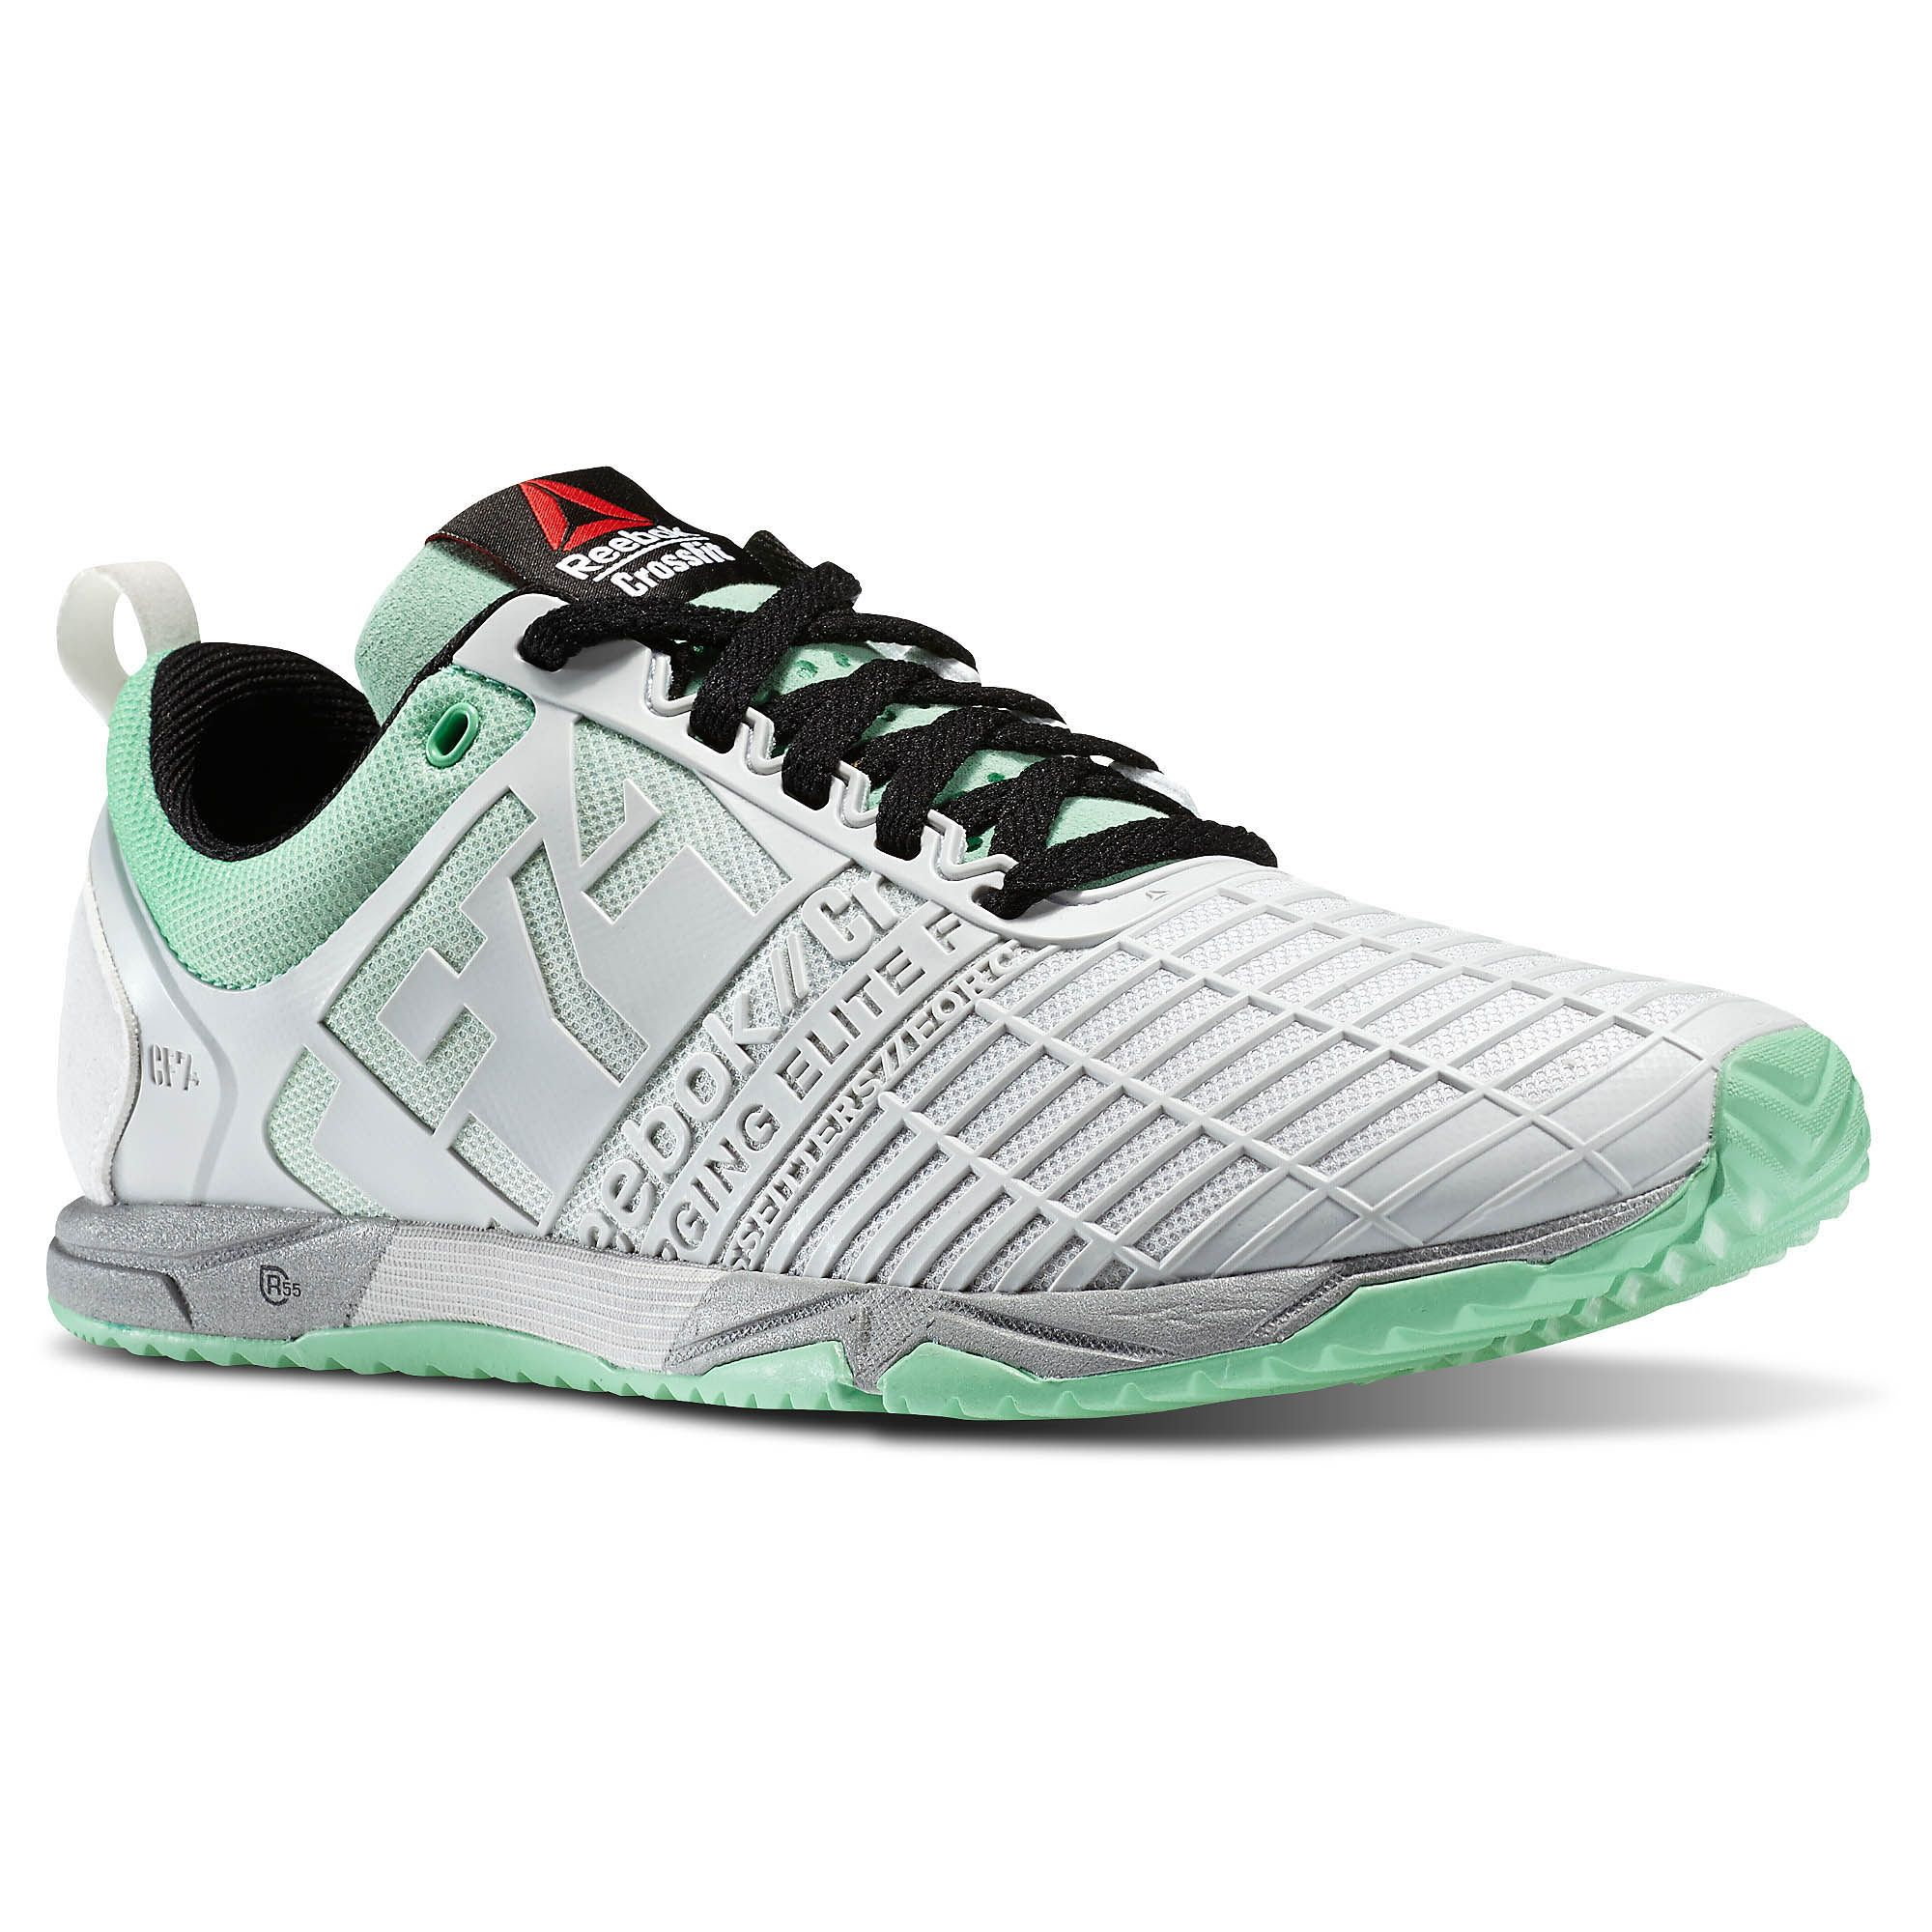 Reebok-running-shoes-and-sportsshoes-for-women (19)